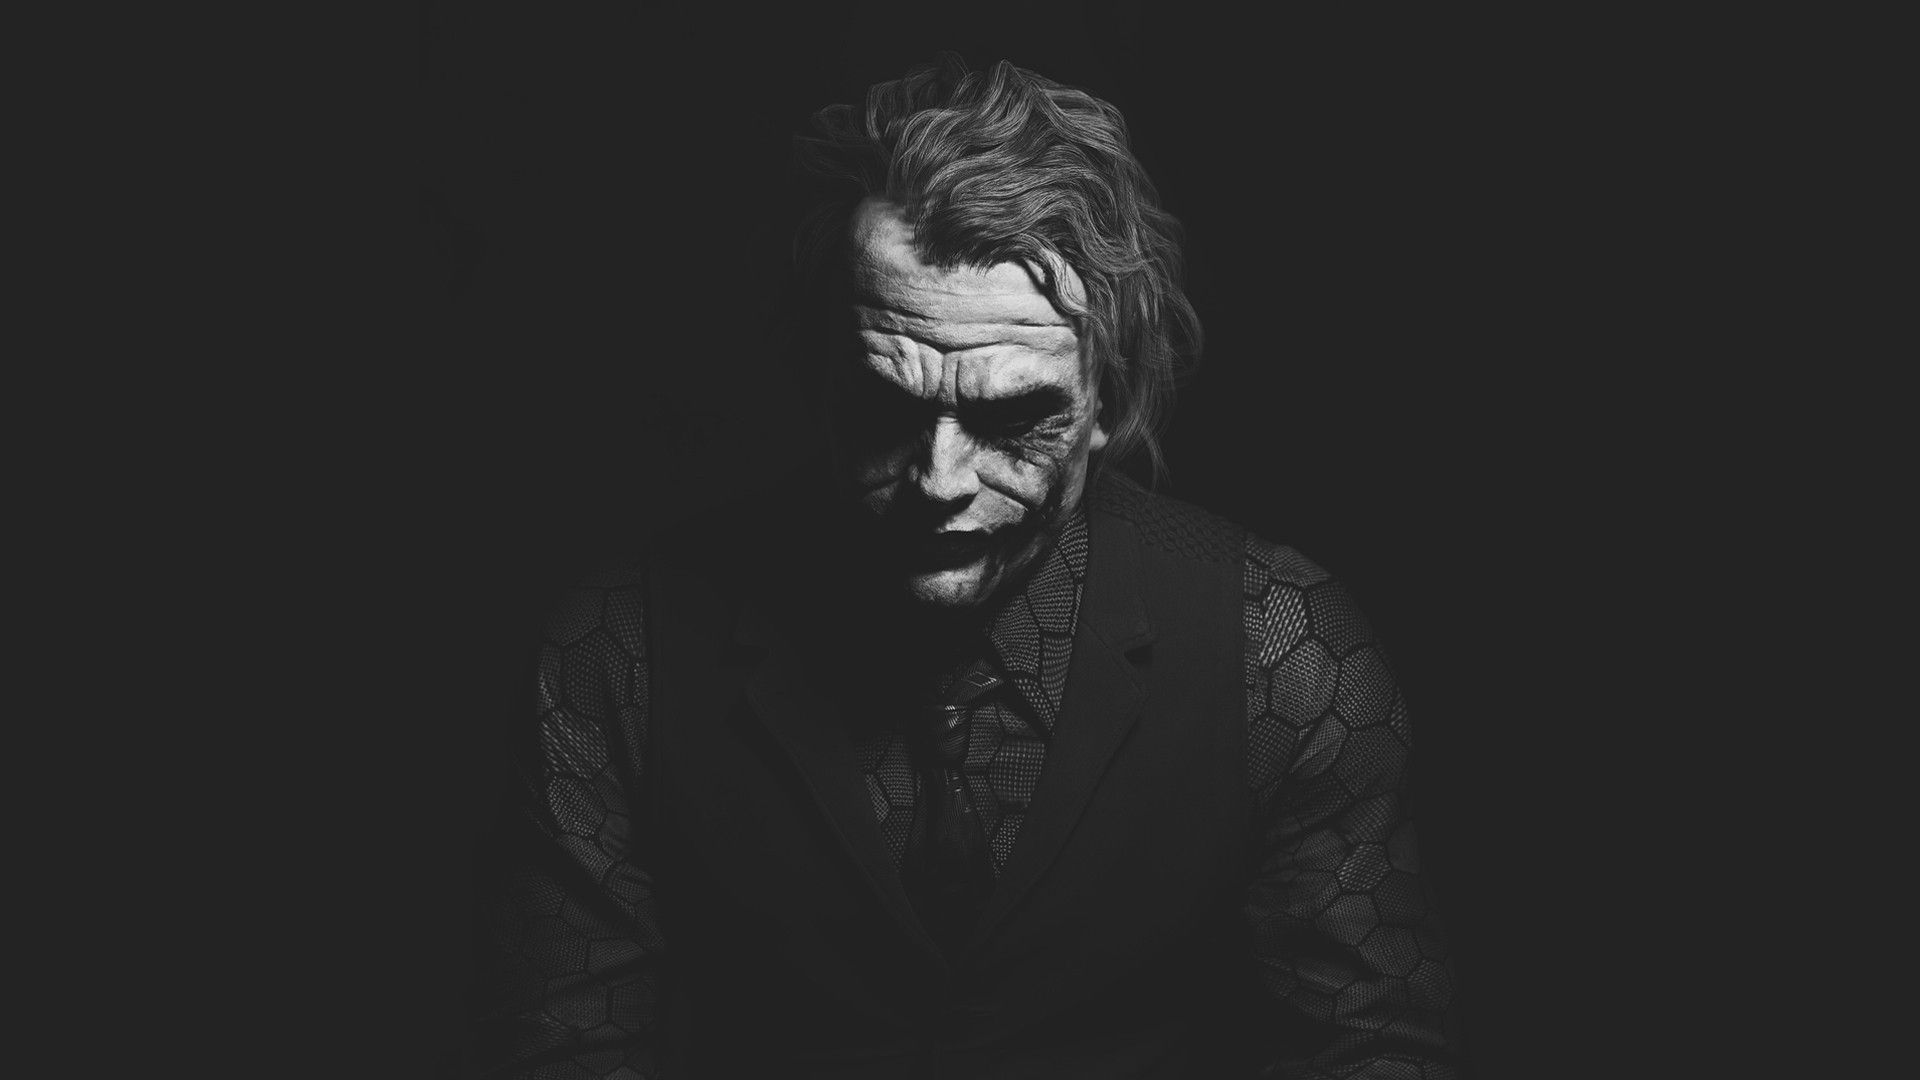 Joker Background Hd Flip Wallpapers Download Free Wallpaper Hd